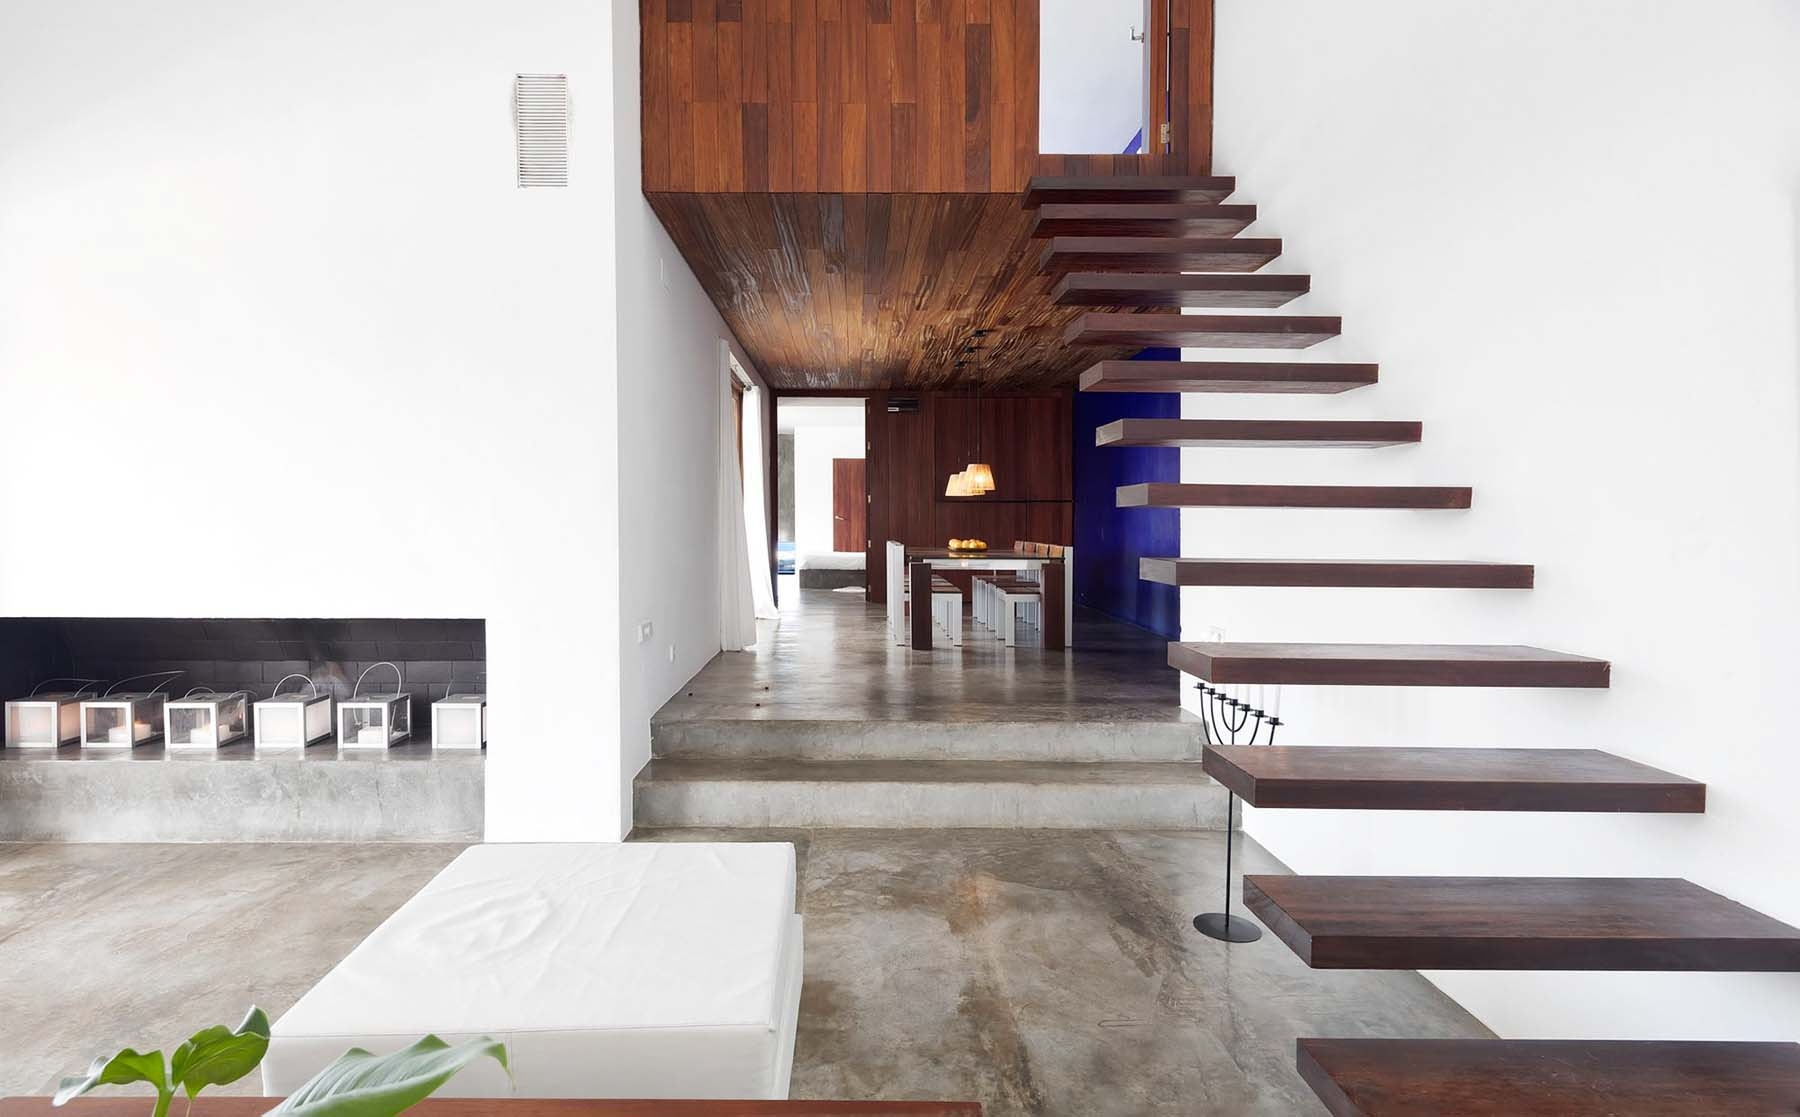 Modern Staircase Design Contemporary Stair Design Ideas   Simple Wooden Staircase Designs   Decorative   Classic Wood   Contemporary   Space Saving   Traditional